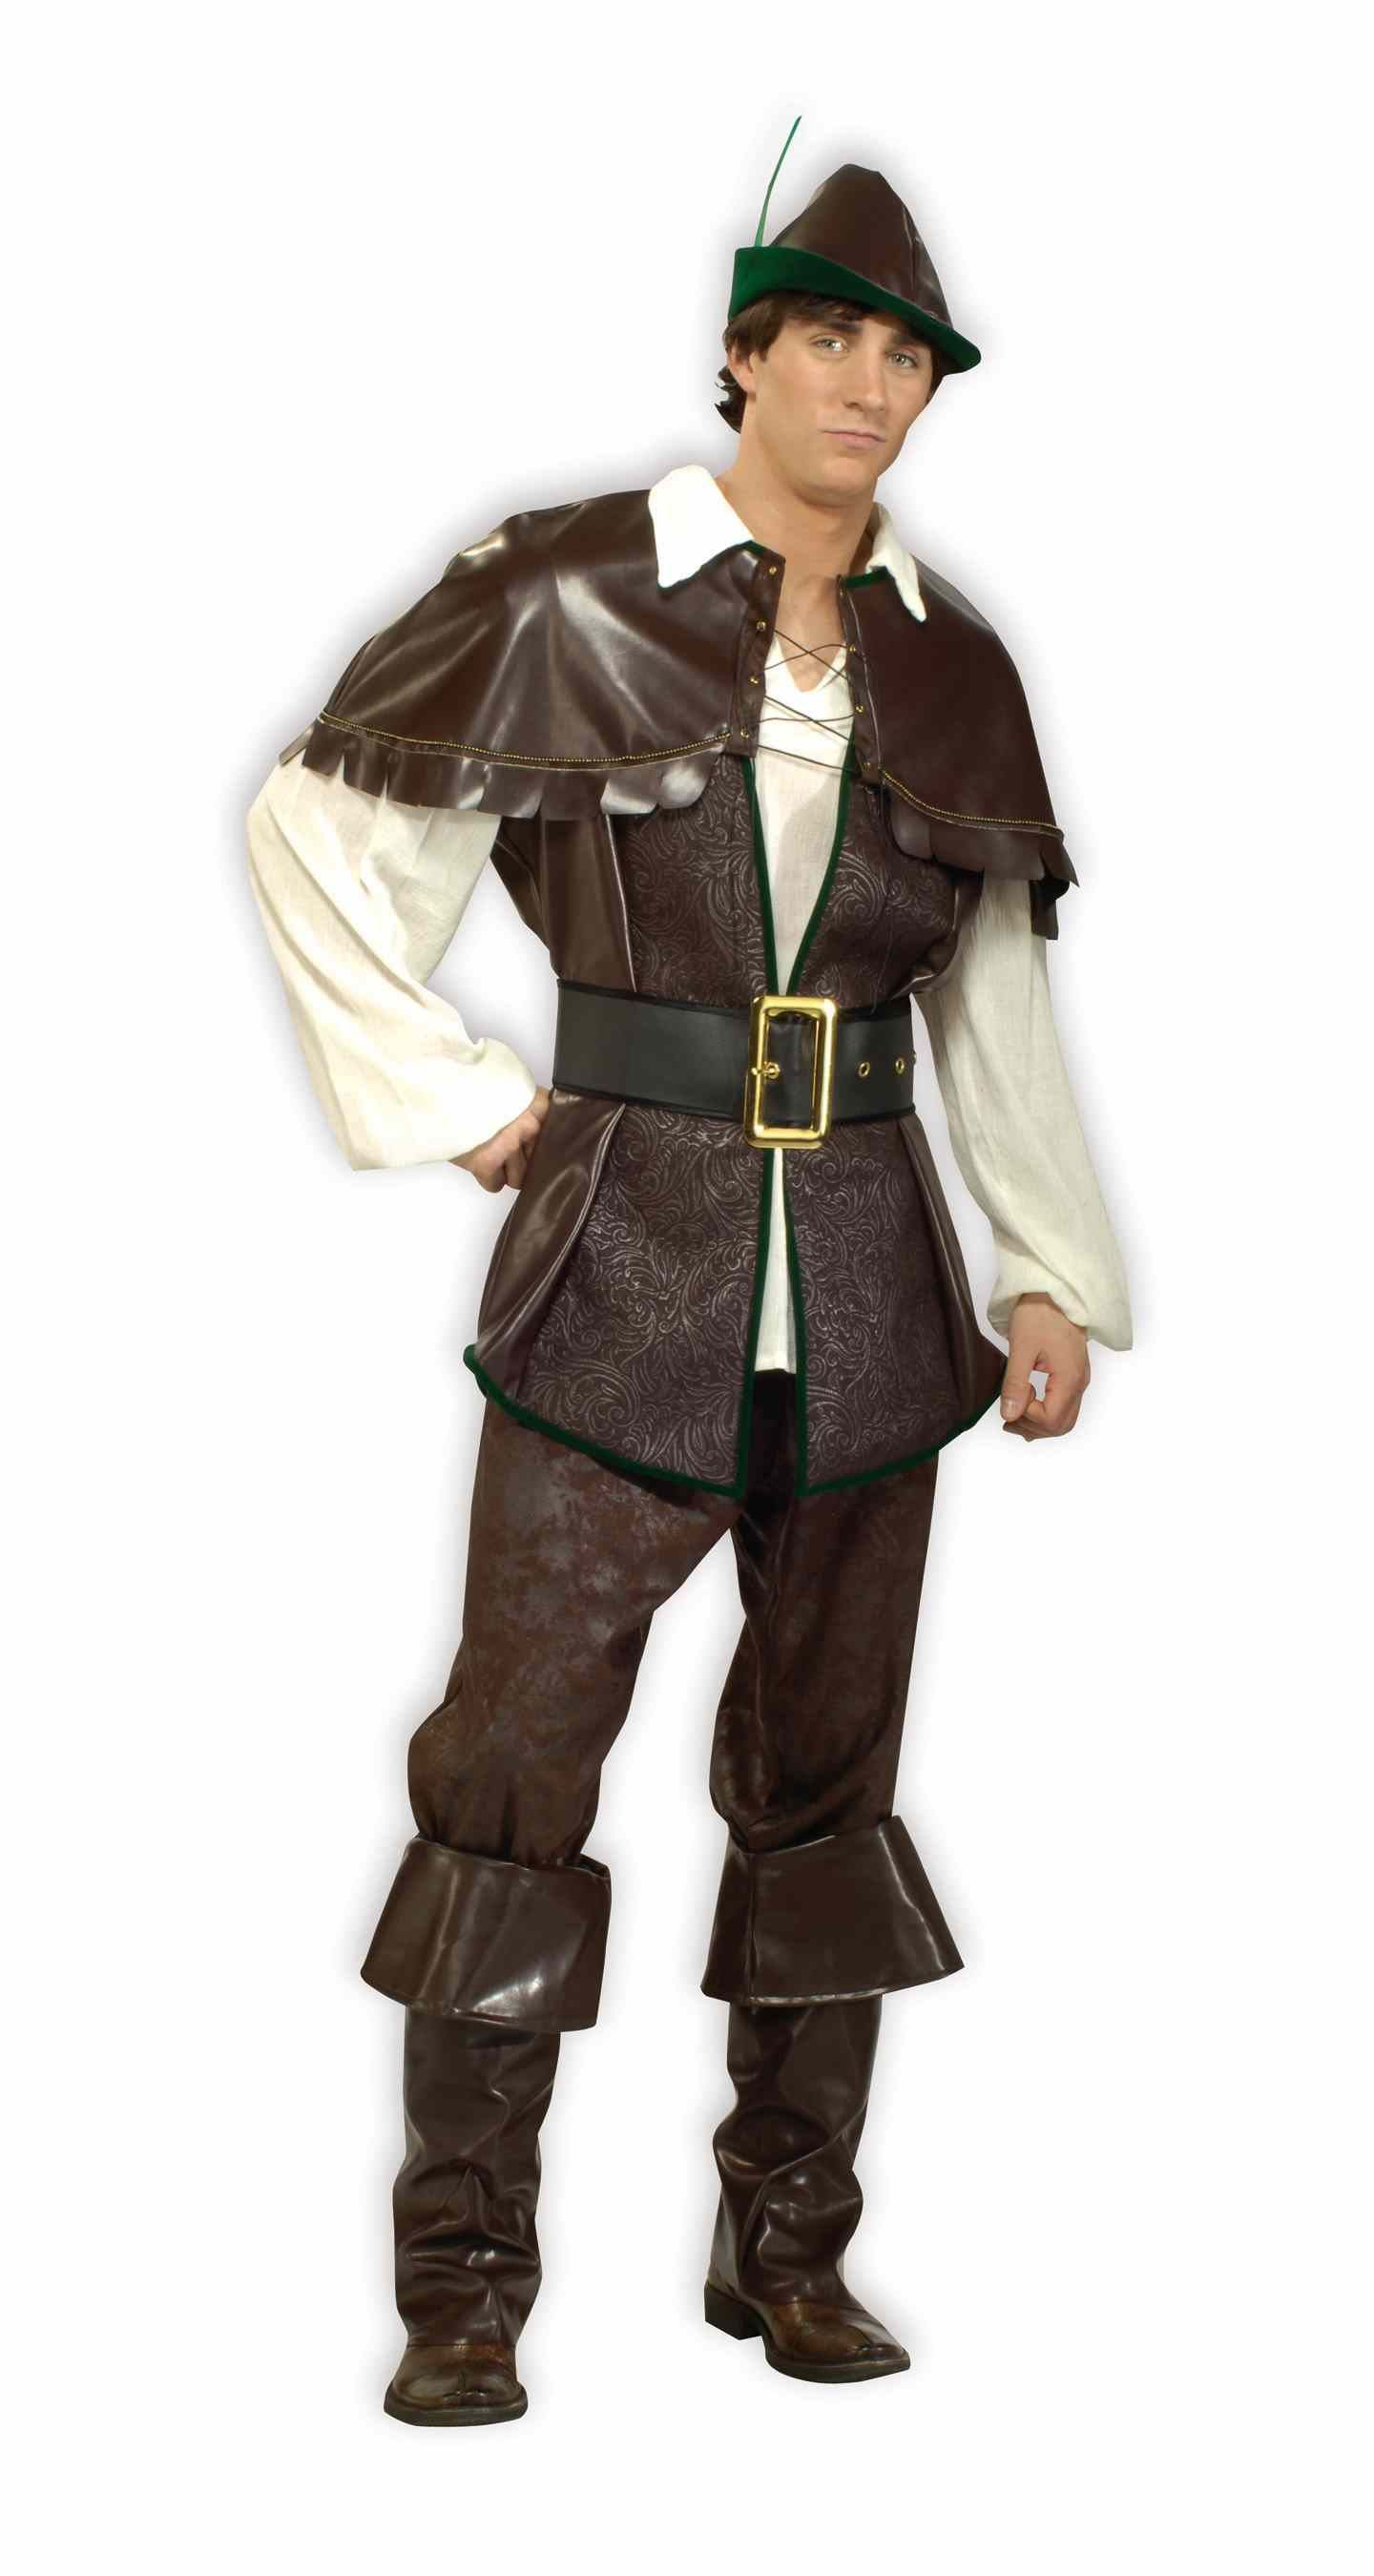 Adult Robin Hood Designer Men Costume  sc 1 st  The Costume Land & Adult Robin Hood Designer Men Costume | $69.99 | The Costume Land